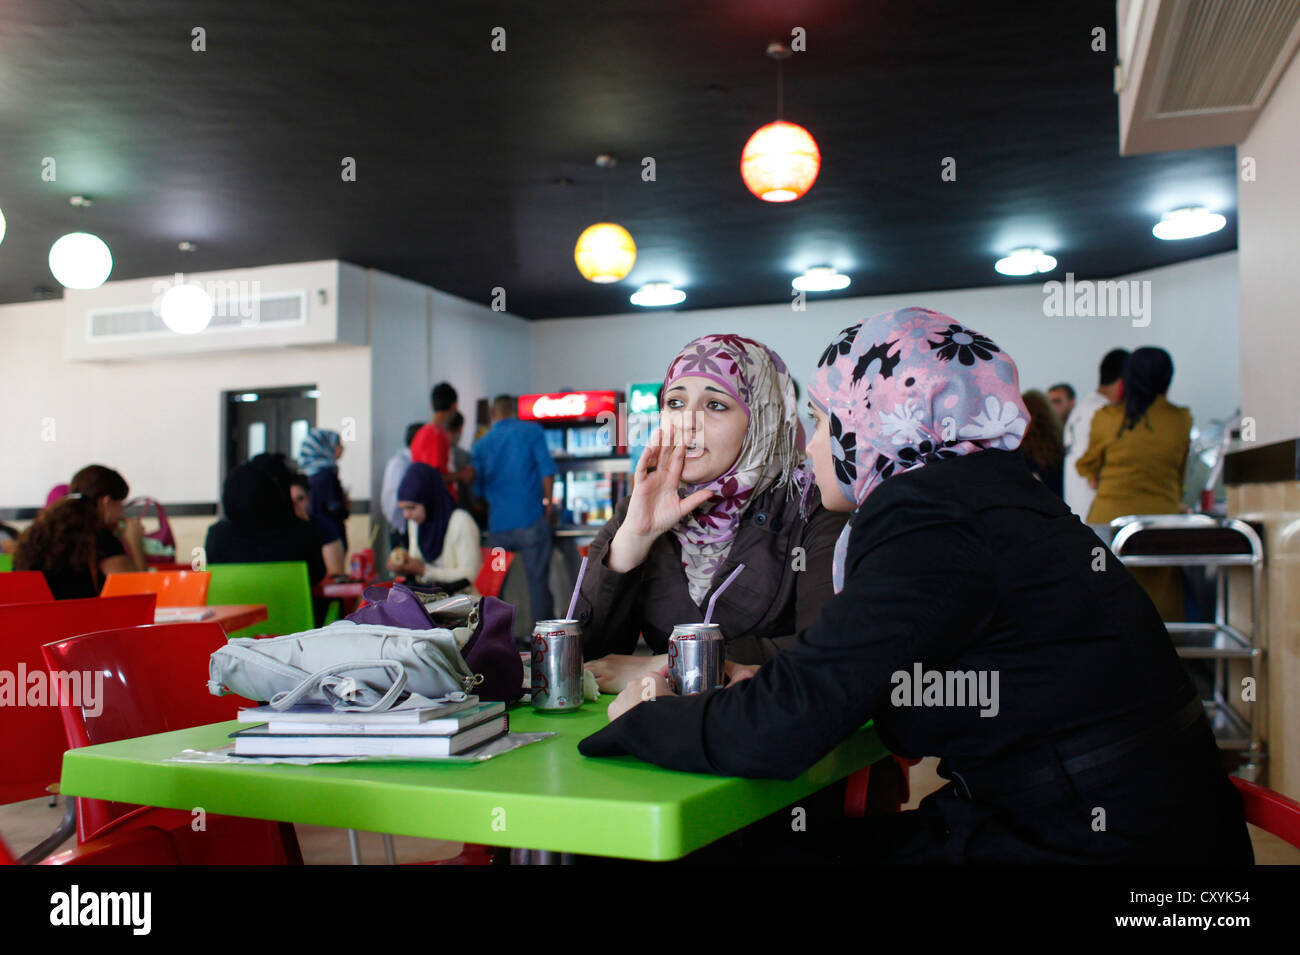 Palestinian students in the cafeteria of Al Quds university in Abu Dis a Palestinian town in the Jerusalem Governorate - Stock Image